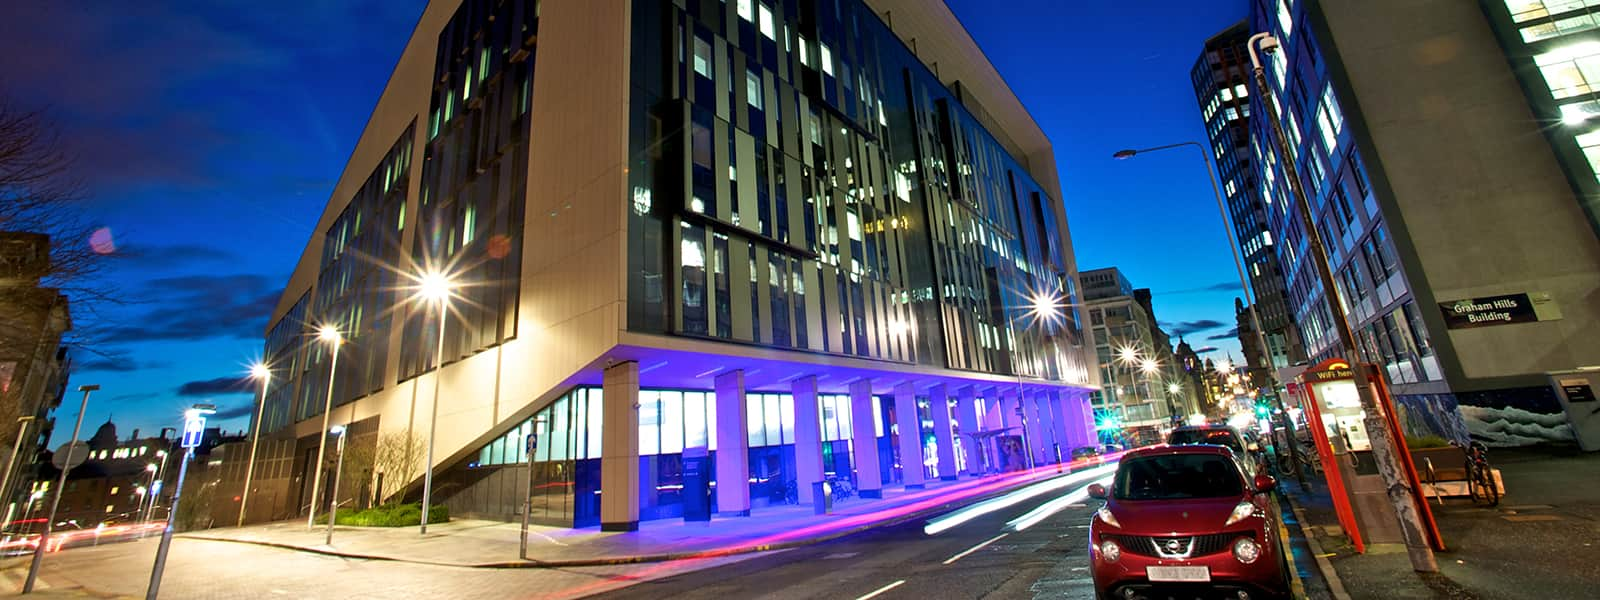 Artistic shot of the Technology & Innovation Centre lit up at night